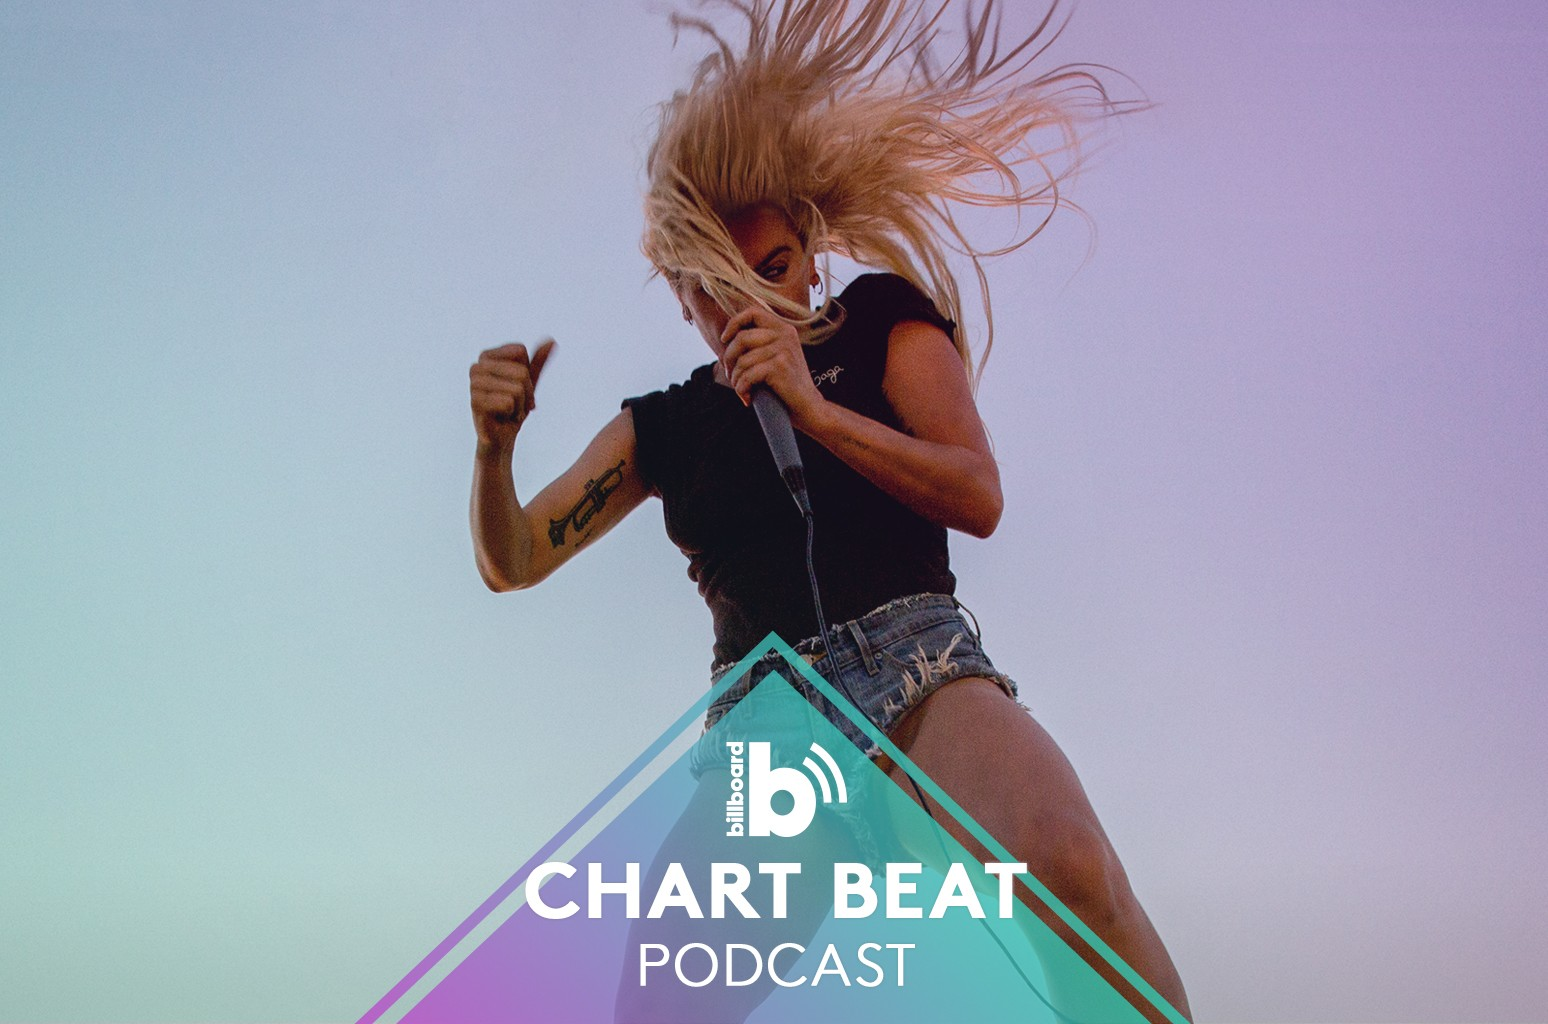 Billboard's Chart Beat Podcast